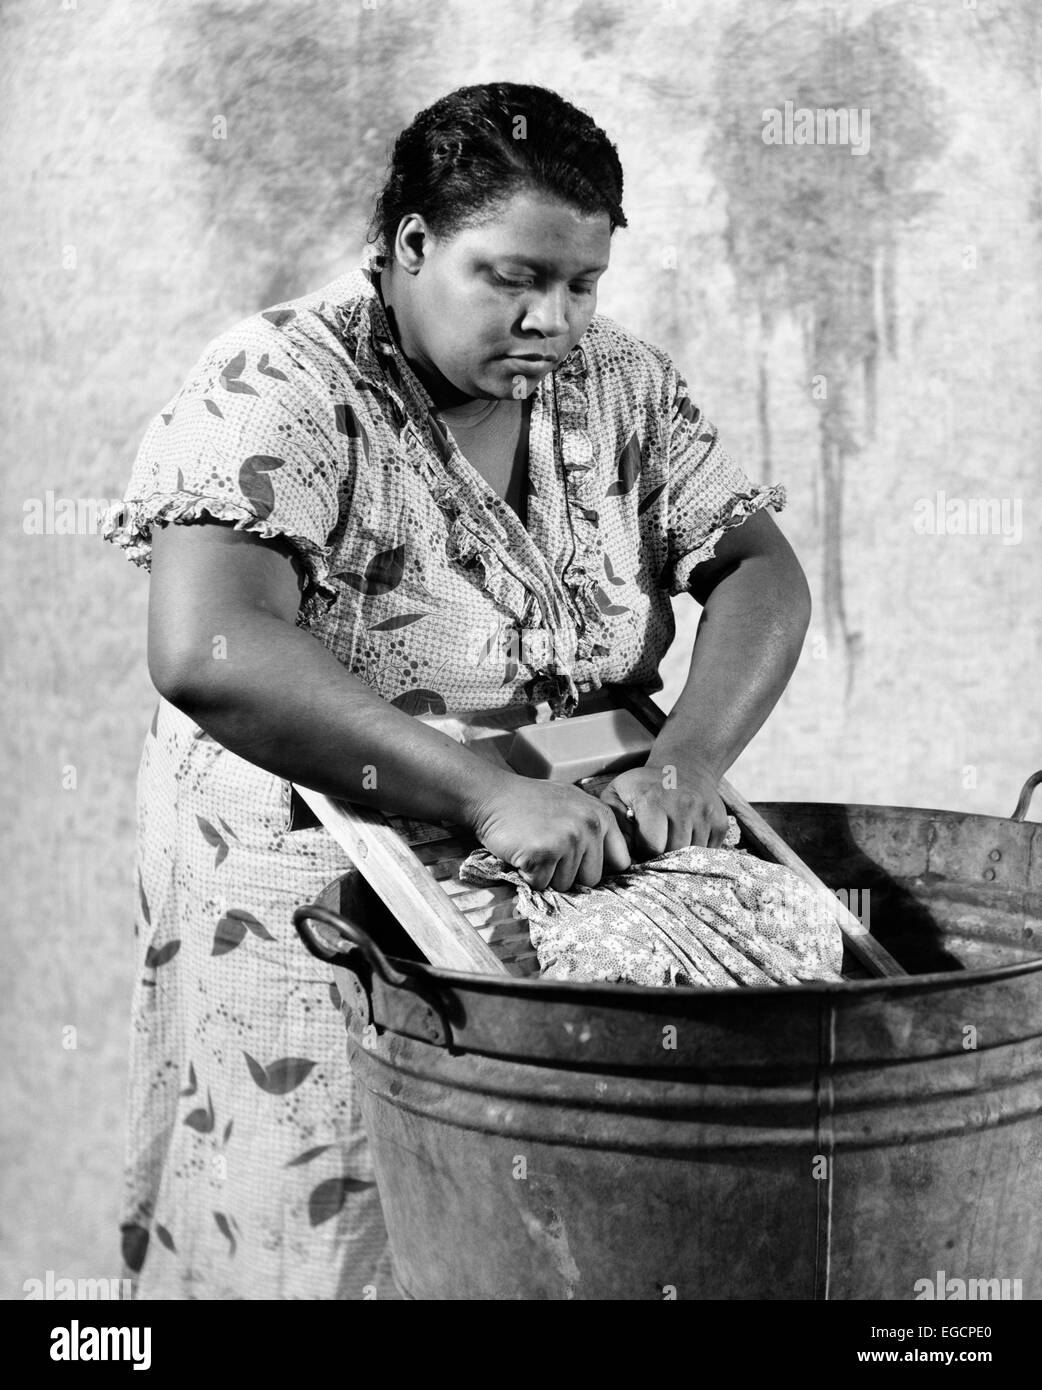 1930s AFRICAN-AMERICAN WOMAN WASHING SCRUBBING CLOTHES ON WASHBOARD IN A GALVANIZED ZINC WASHTUB - Stock Image